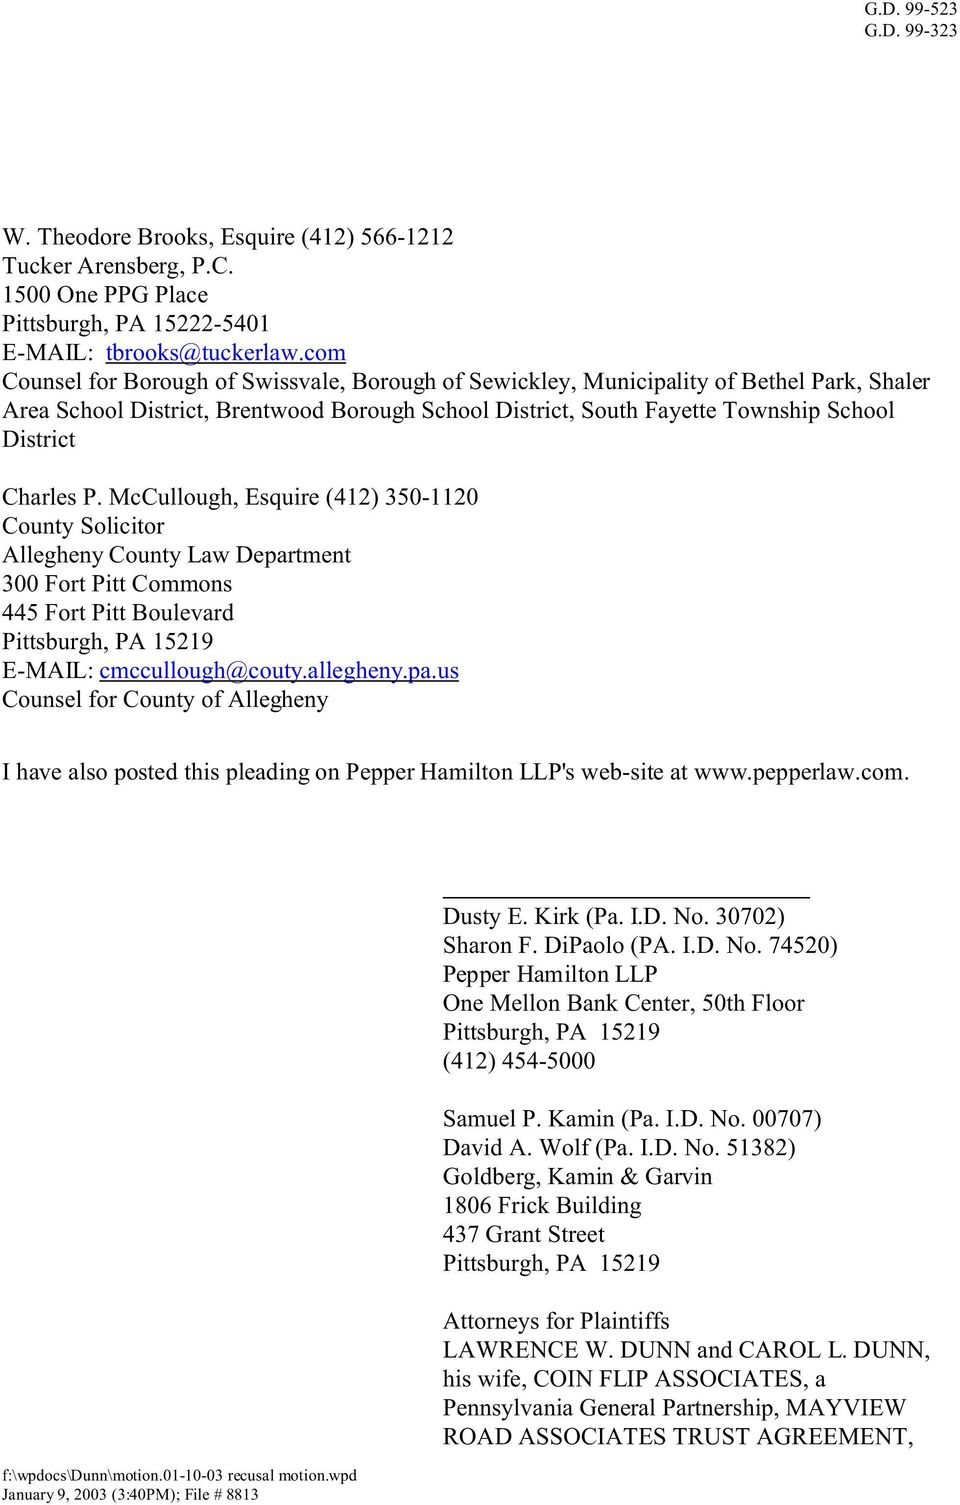 P. McCullough, Esquire (412) 350-1120 County Solicitor Allegheny County Law Department 300 Fort Pitt Commons 445 Fort Pitt Boulevard E-MAIL: cmccullough@couty.allegheny.pa.us Counsel for County of Allegheny I have also posted this pleading on Pepper Hamilton LLP's web-site at www.